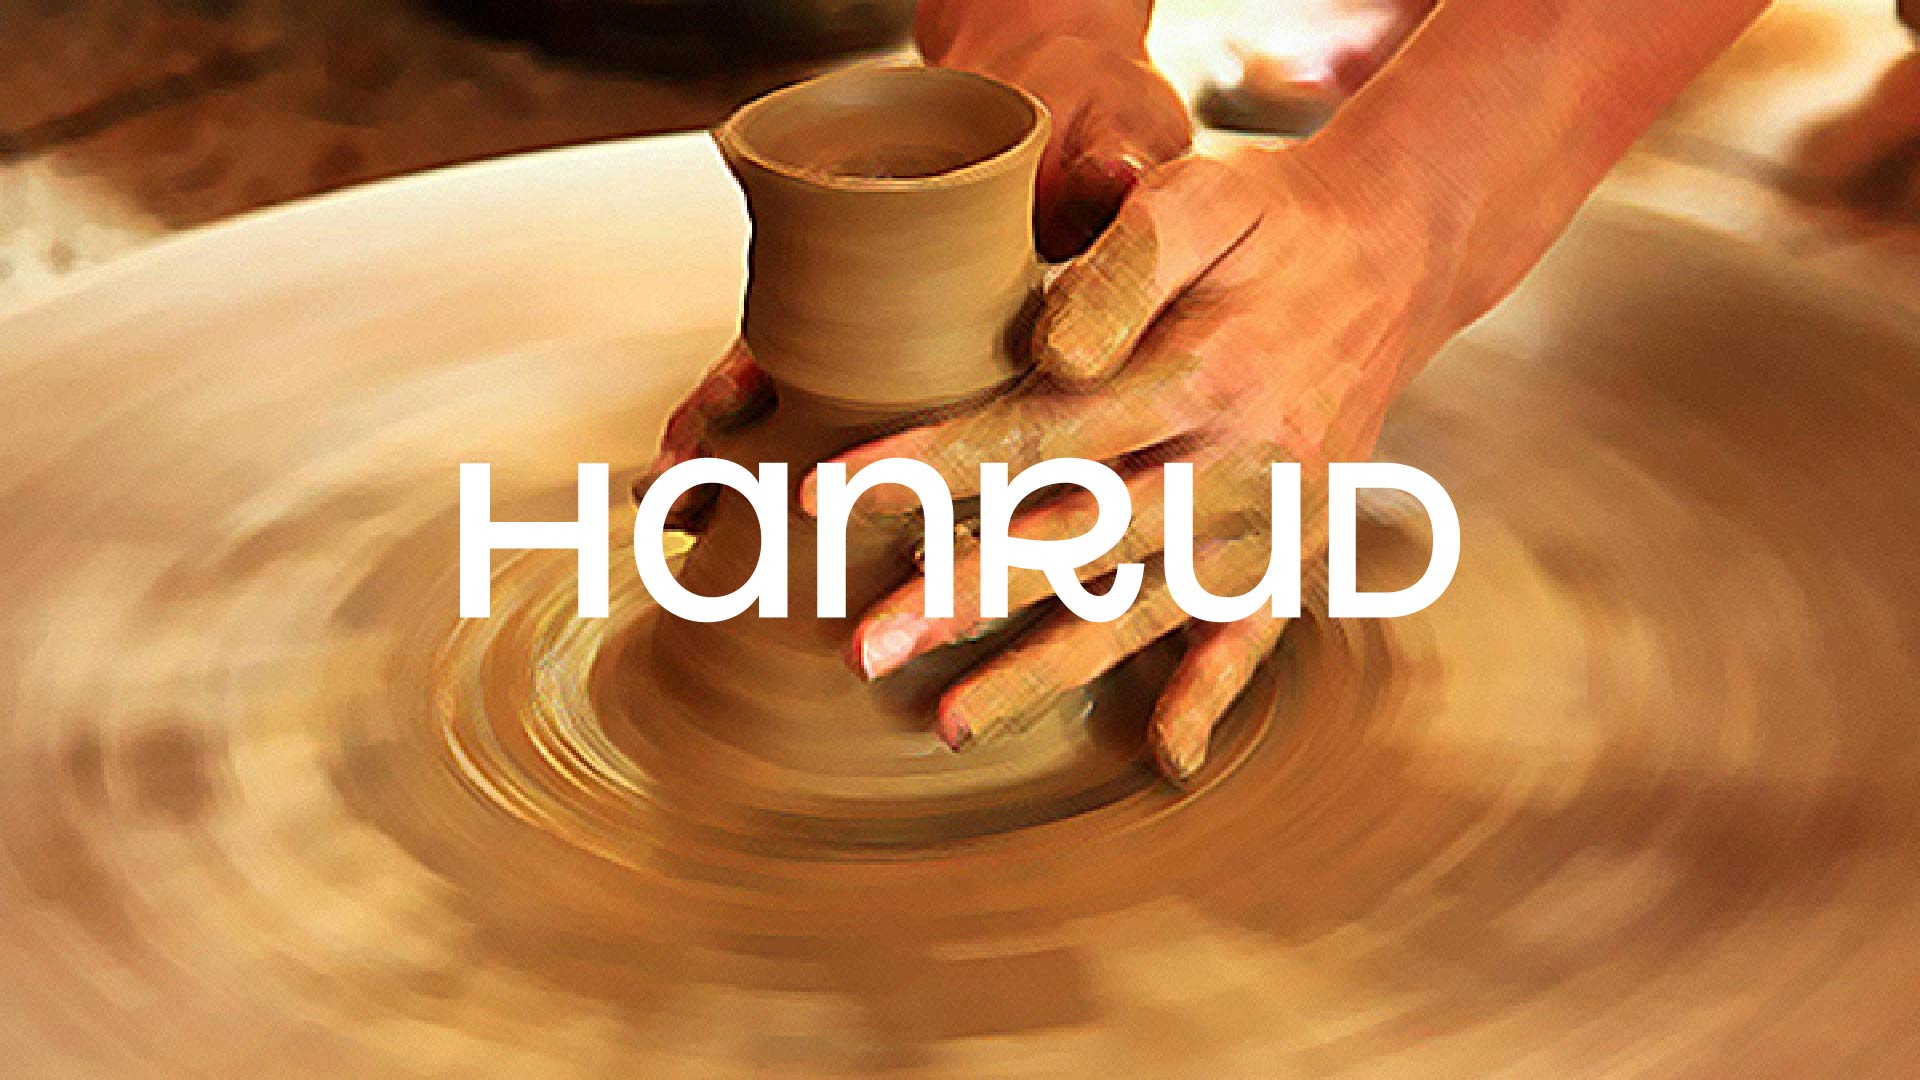 Hanrud Logo and Brand Identity Designed by Trong Duc